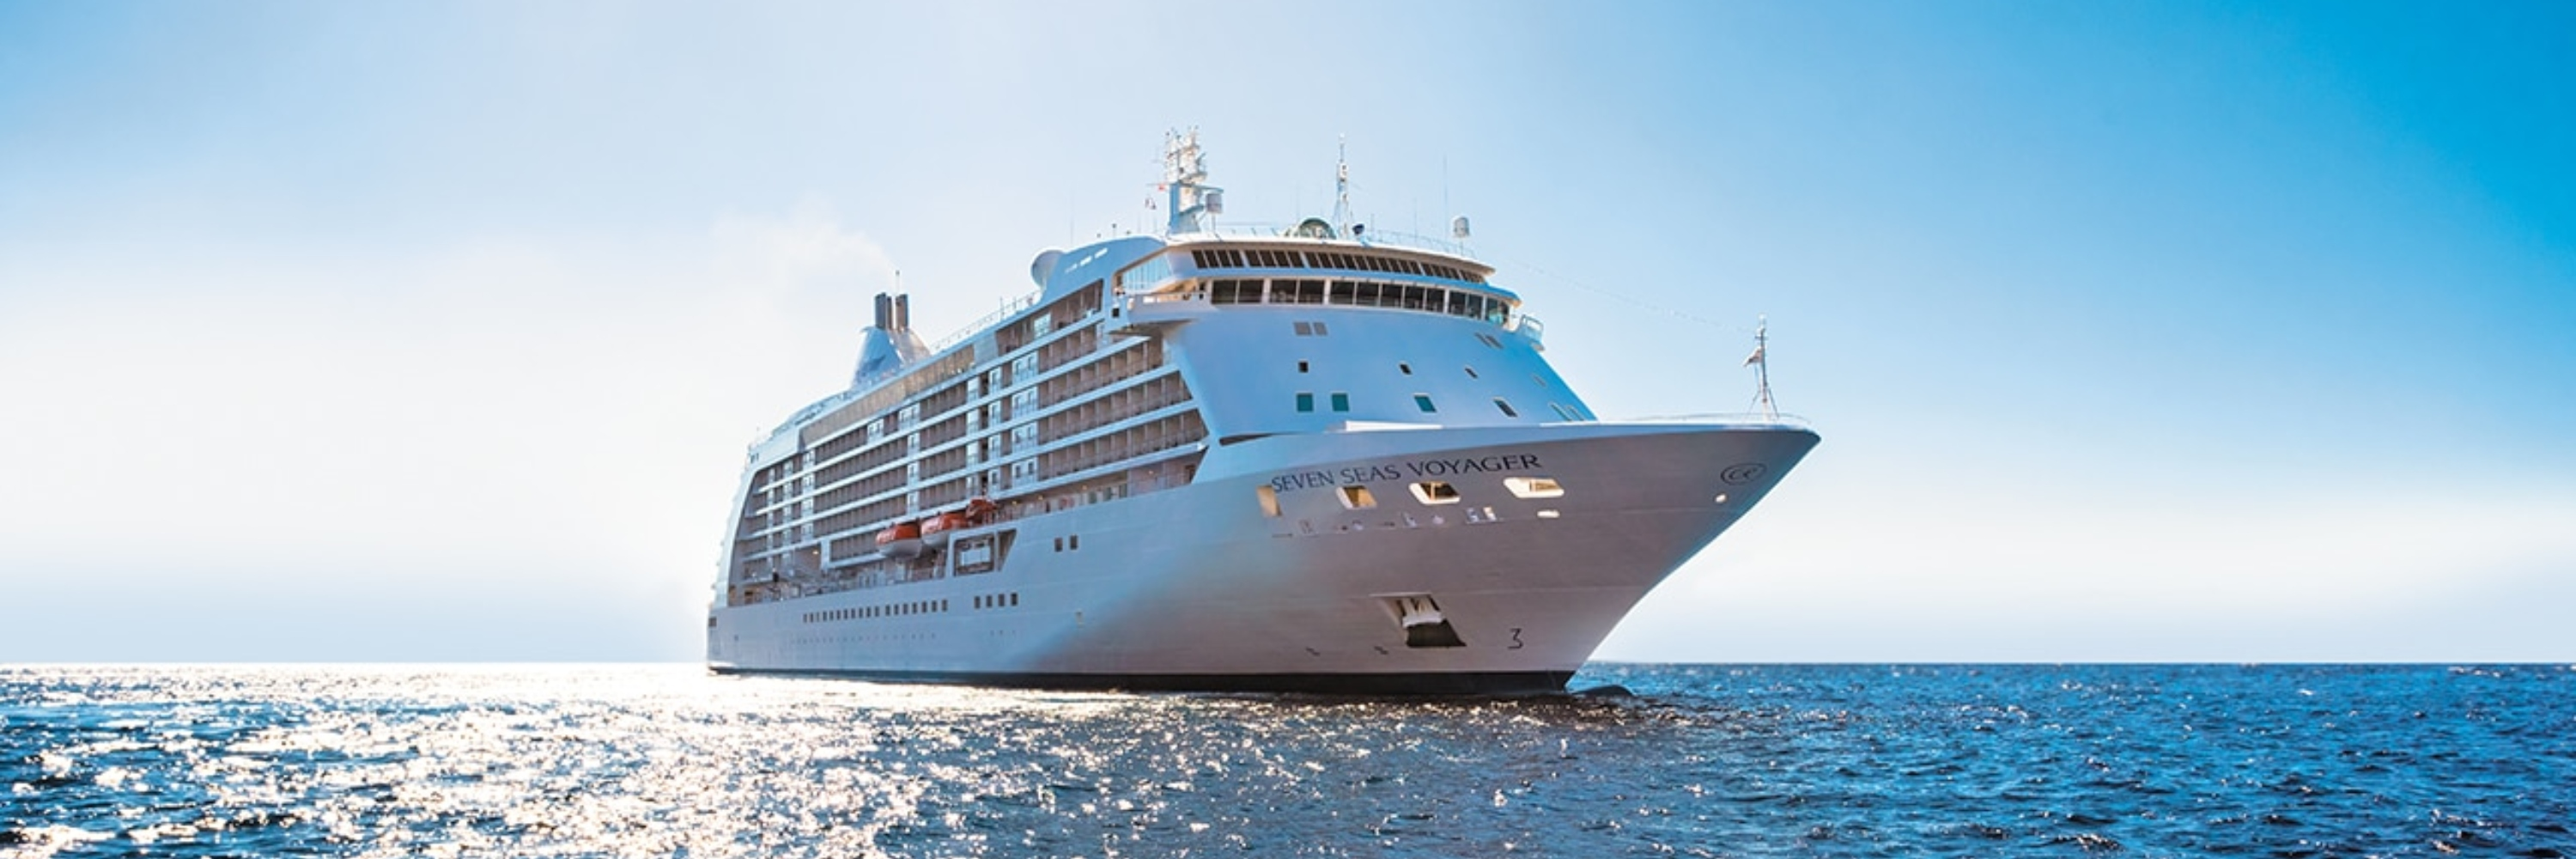 Regent Seven Seas Cruises - * Holiday Cruise Sale